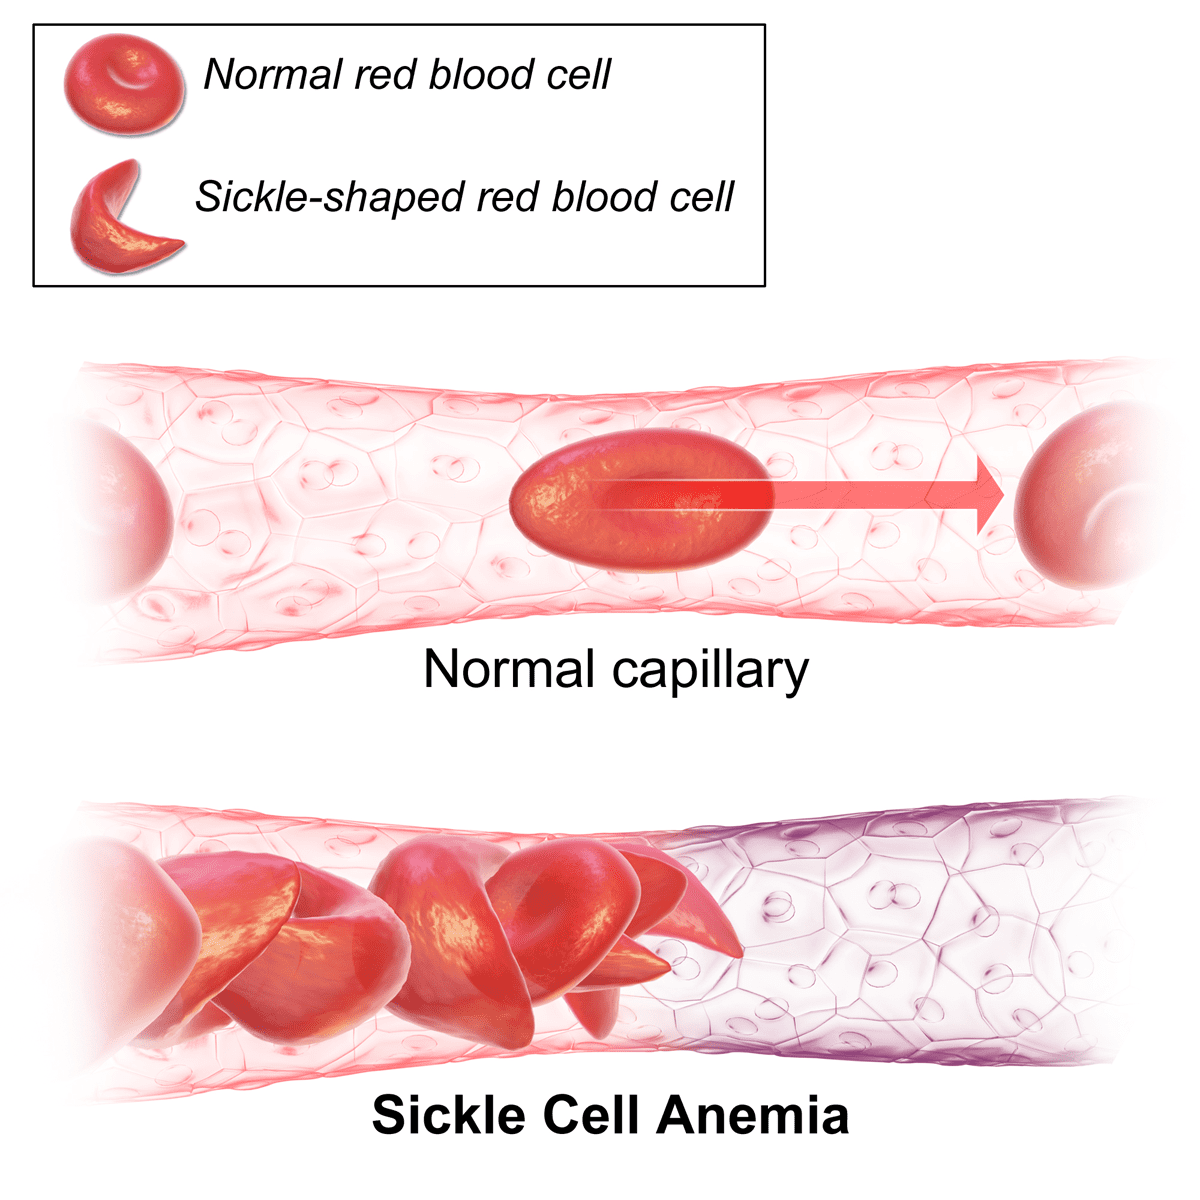 cell anemia sickle cell anemia